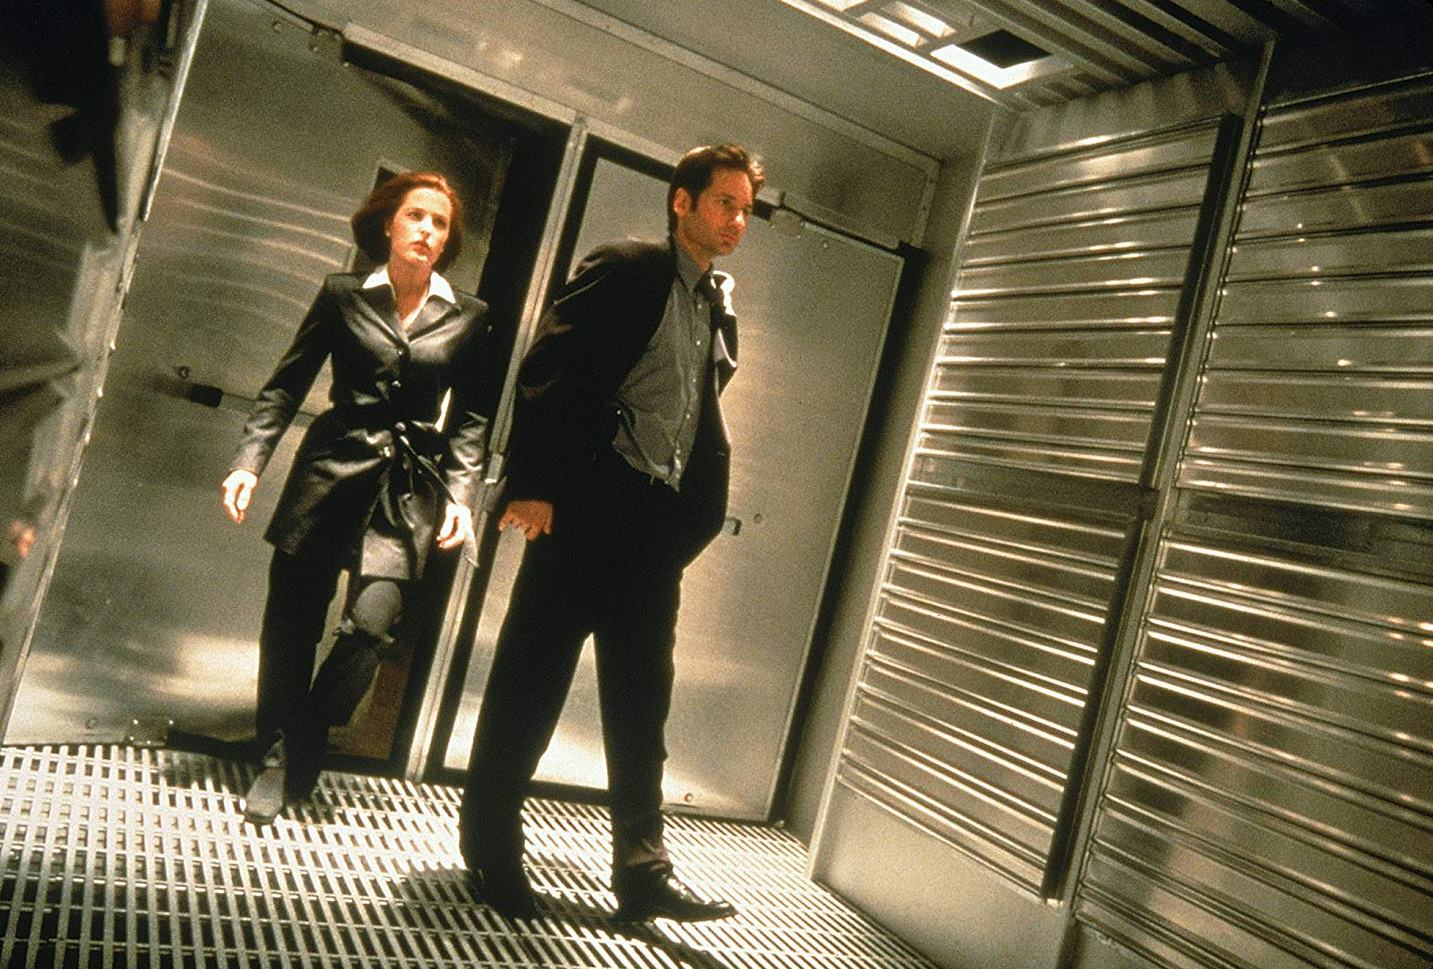 Agents Dana Scully (Gillian Anderson) and Fox Mulder (David Duchovny) enter the domes in The X Files (1998)